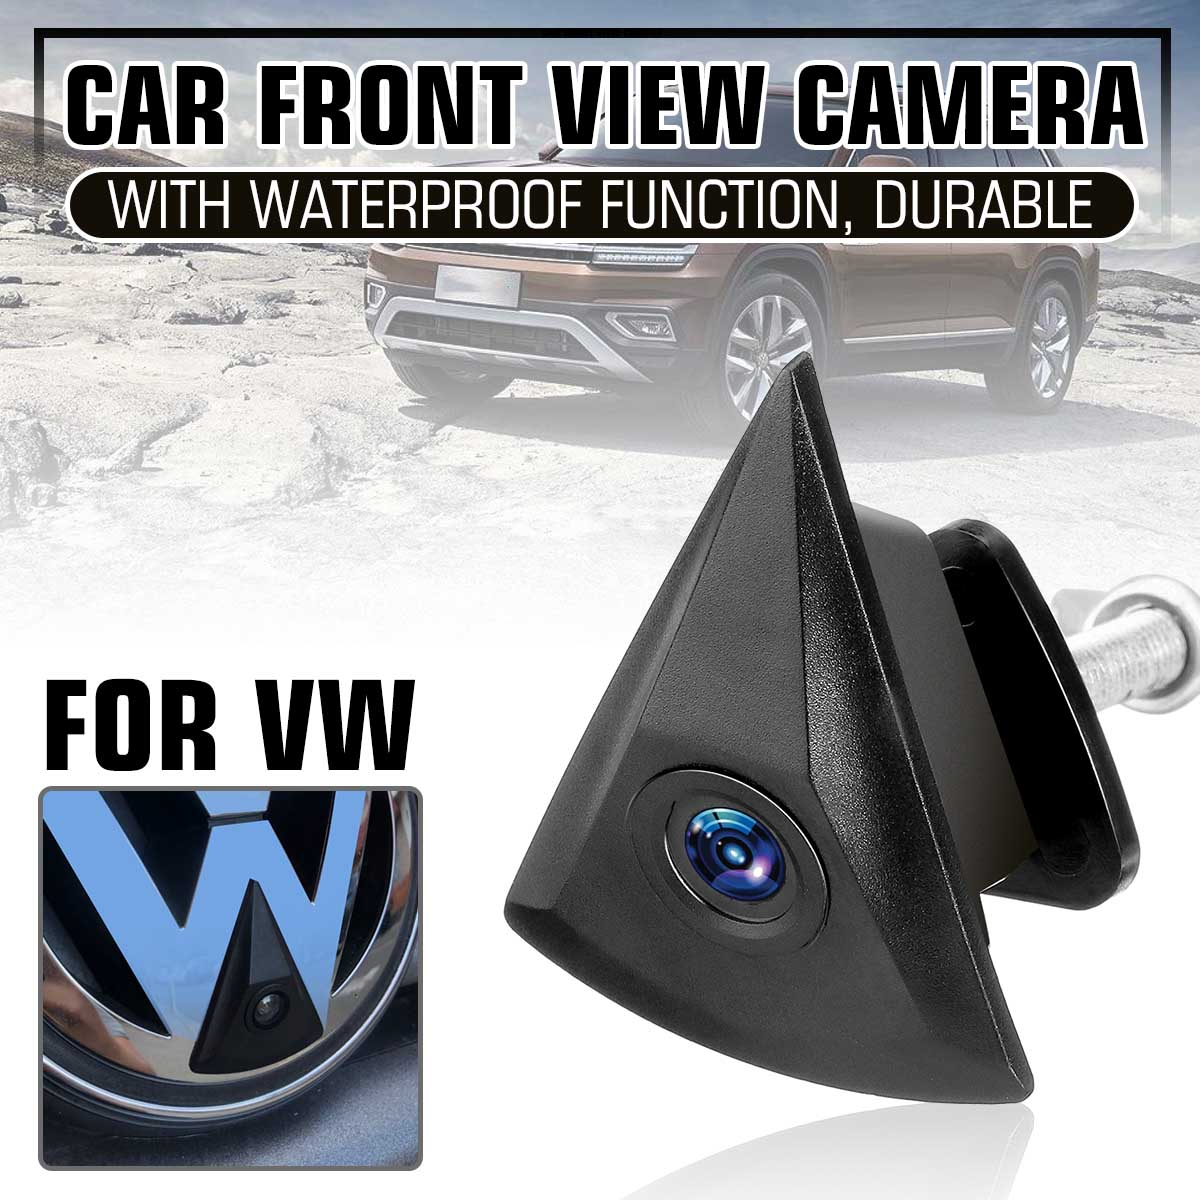 Car Front View Camera For Volkswagen GOLF Jetta Touareg Passat  Polo Tiguan Bora Waterproof Logo Embedded For VW Sedan Beetle T5